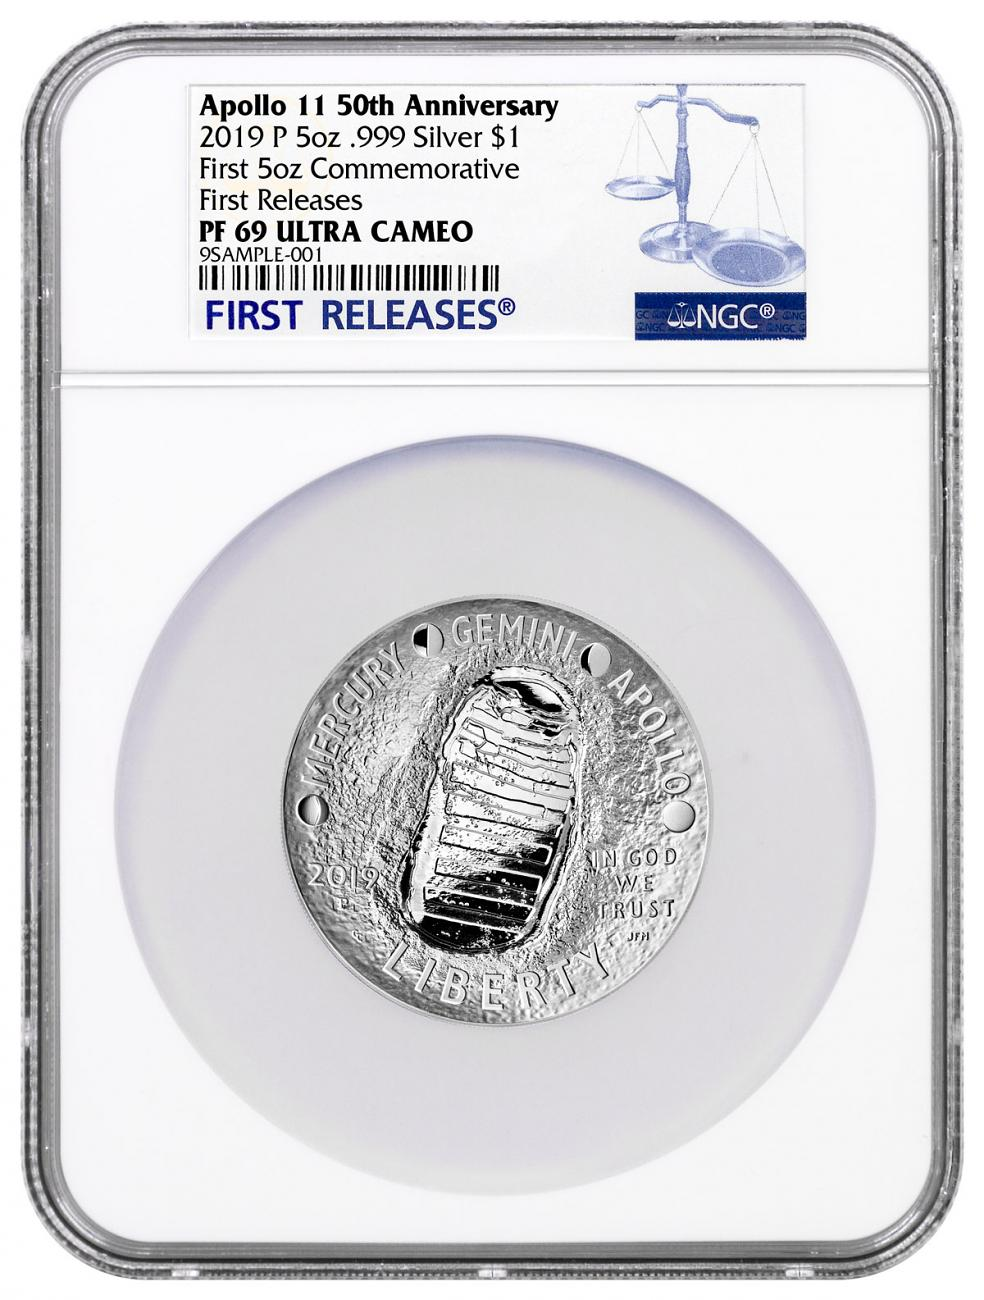 2019-P US Apollo 11 50th Anniversary Commemorative 5 oz. Silver Dollar Proof Coin NGC PF69 FR